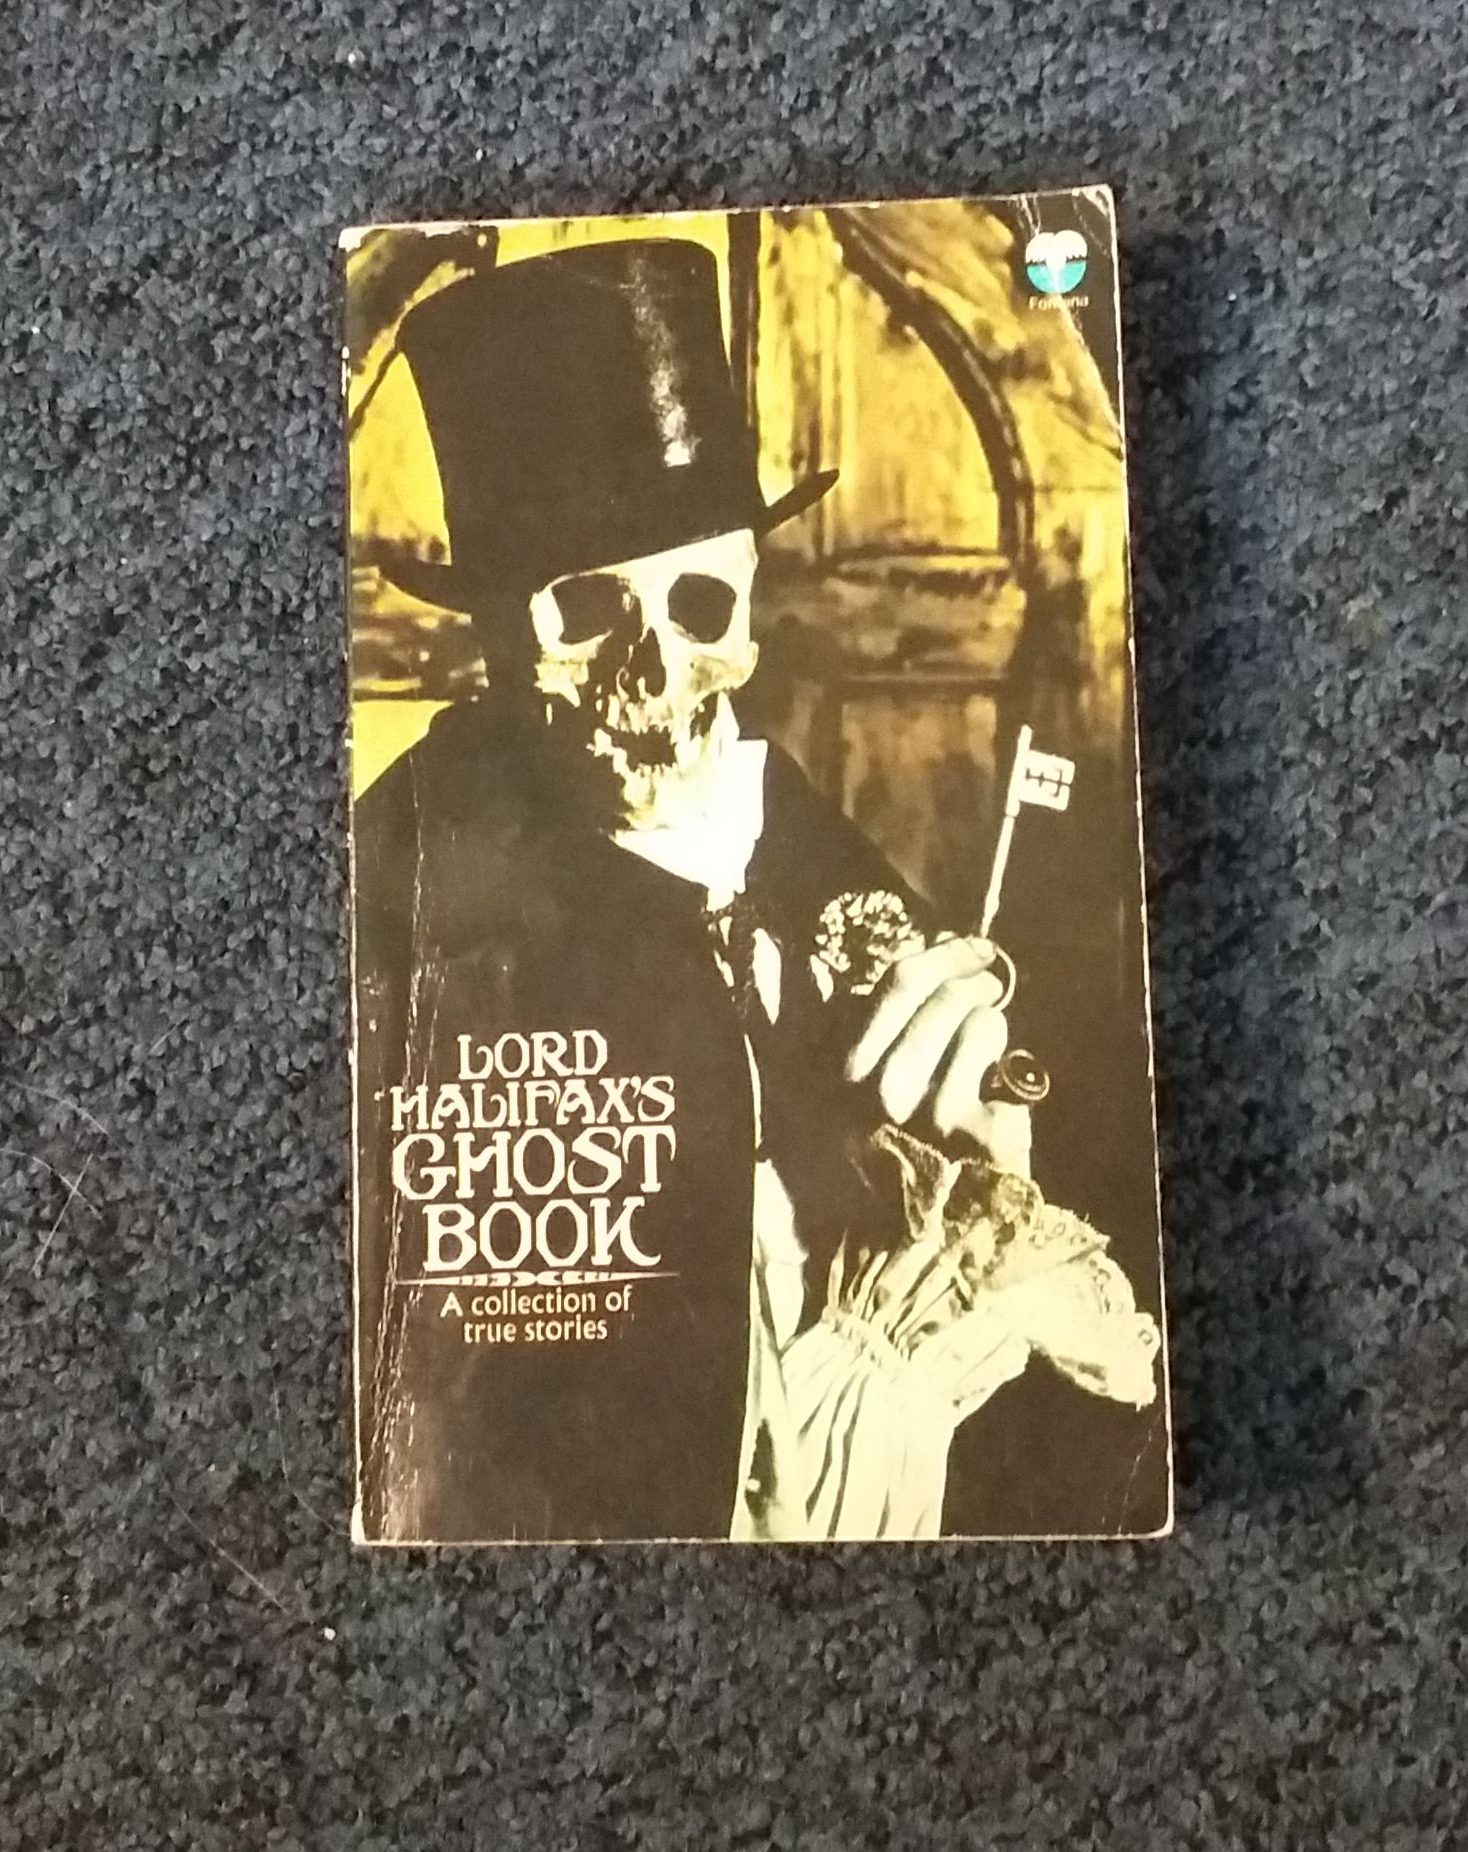 Lord Halifaxs Ghost Book